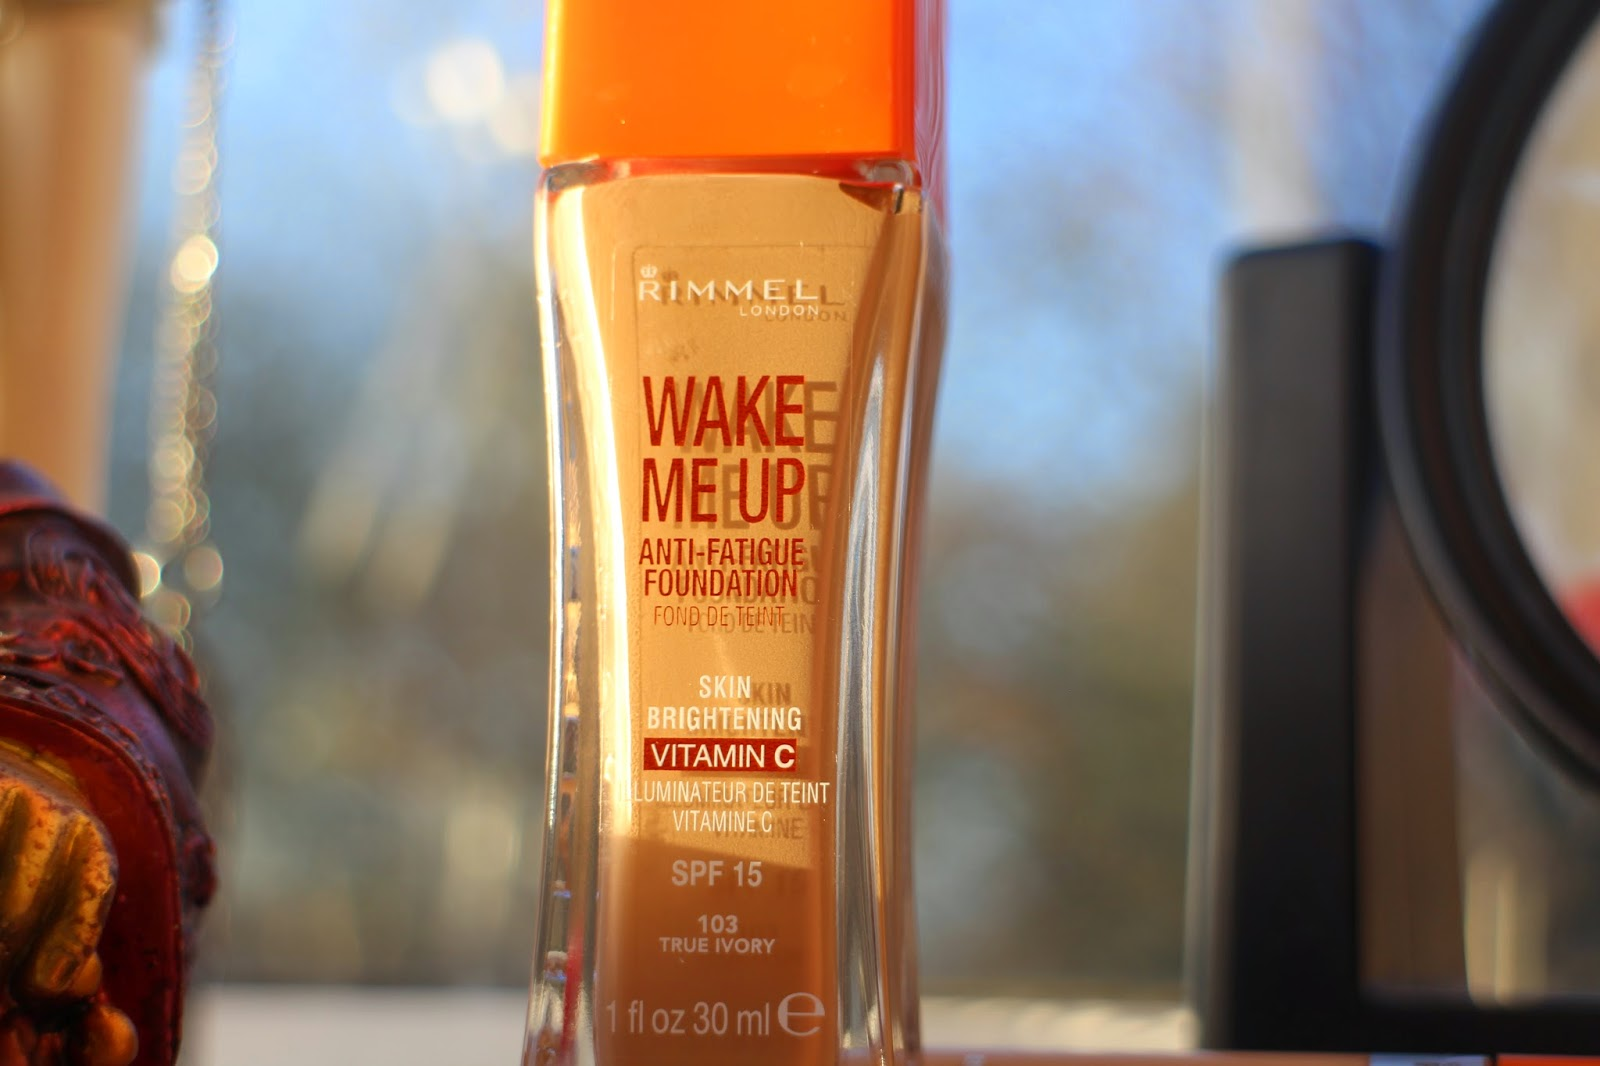 'Wake Me Up' Rimmel Makeup foundation